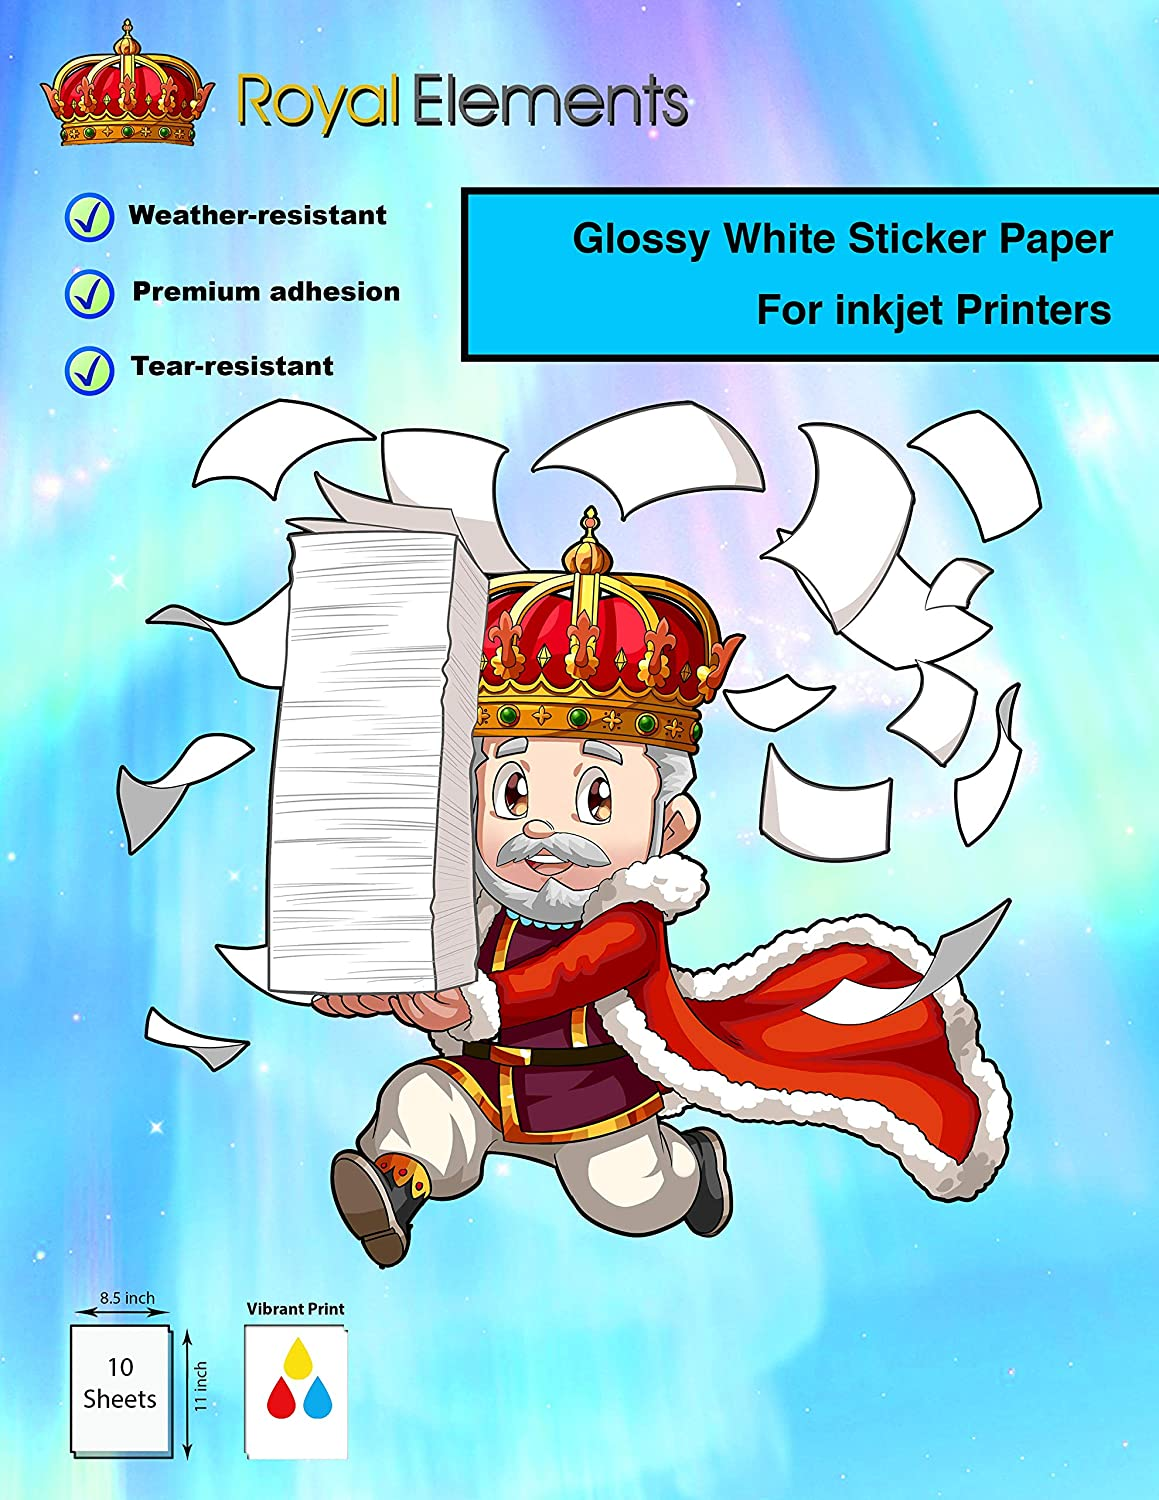 Amazon com royal elements waterproof printable vinyl sticker paper for inkjet printer 10 sheets glossy white office products